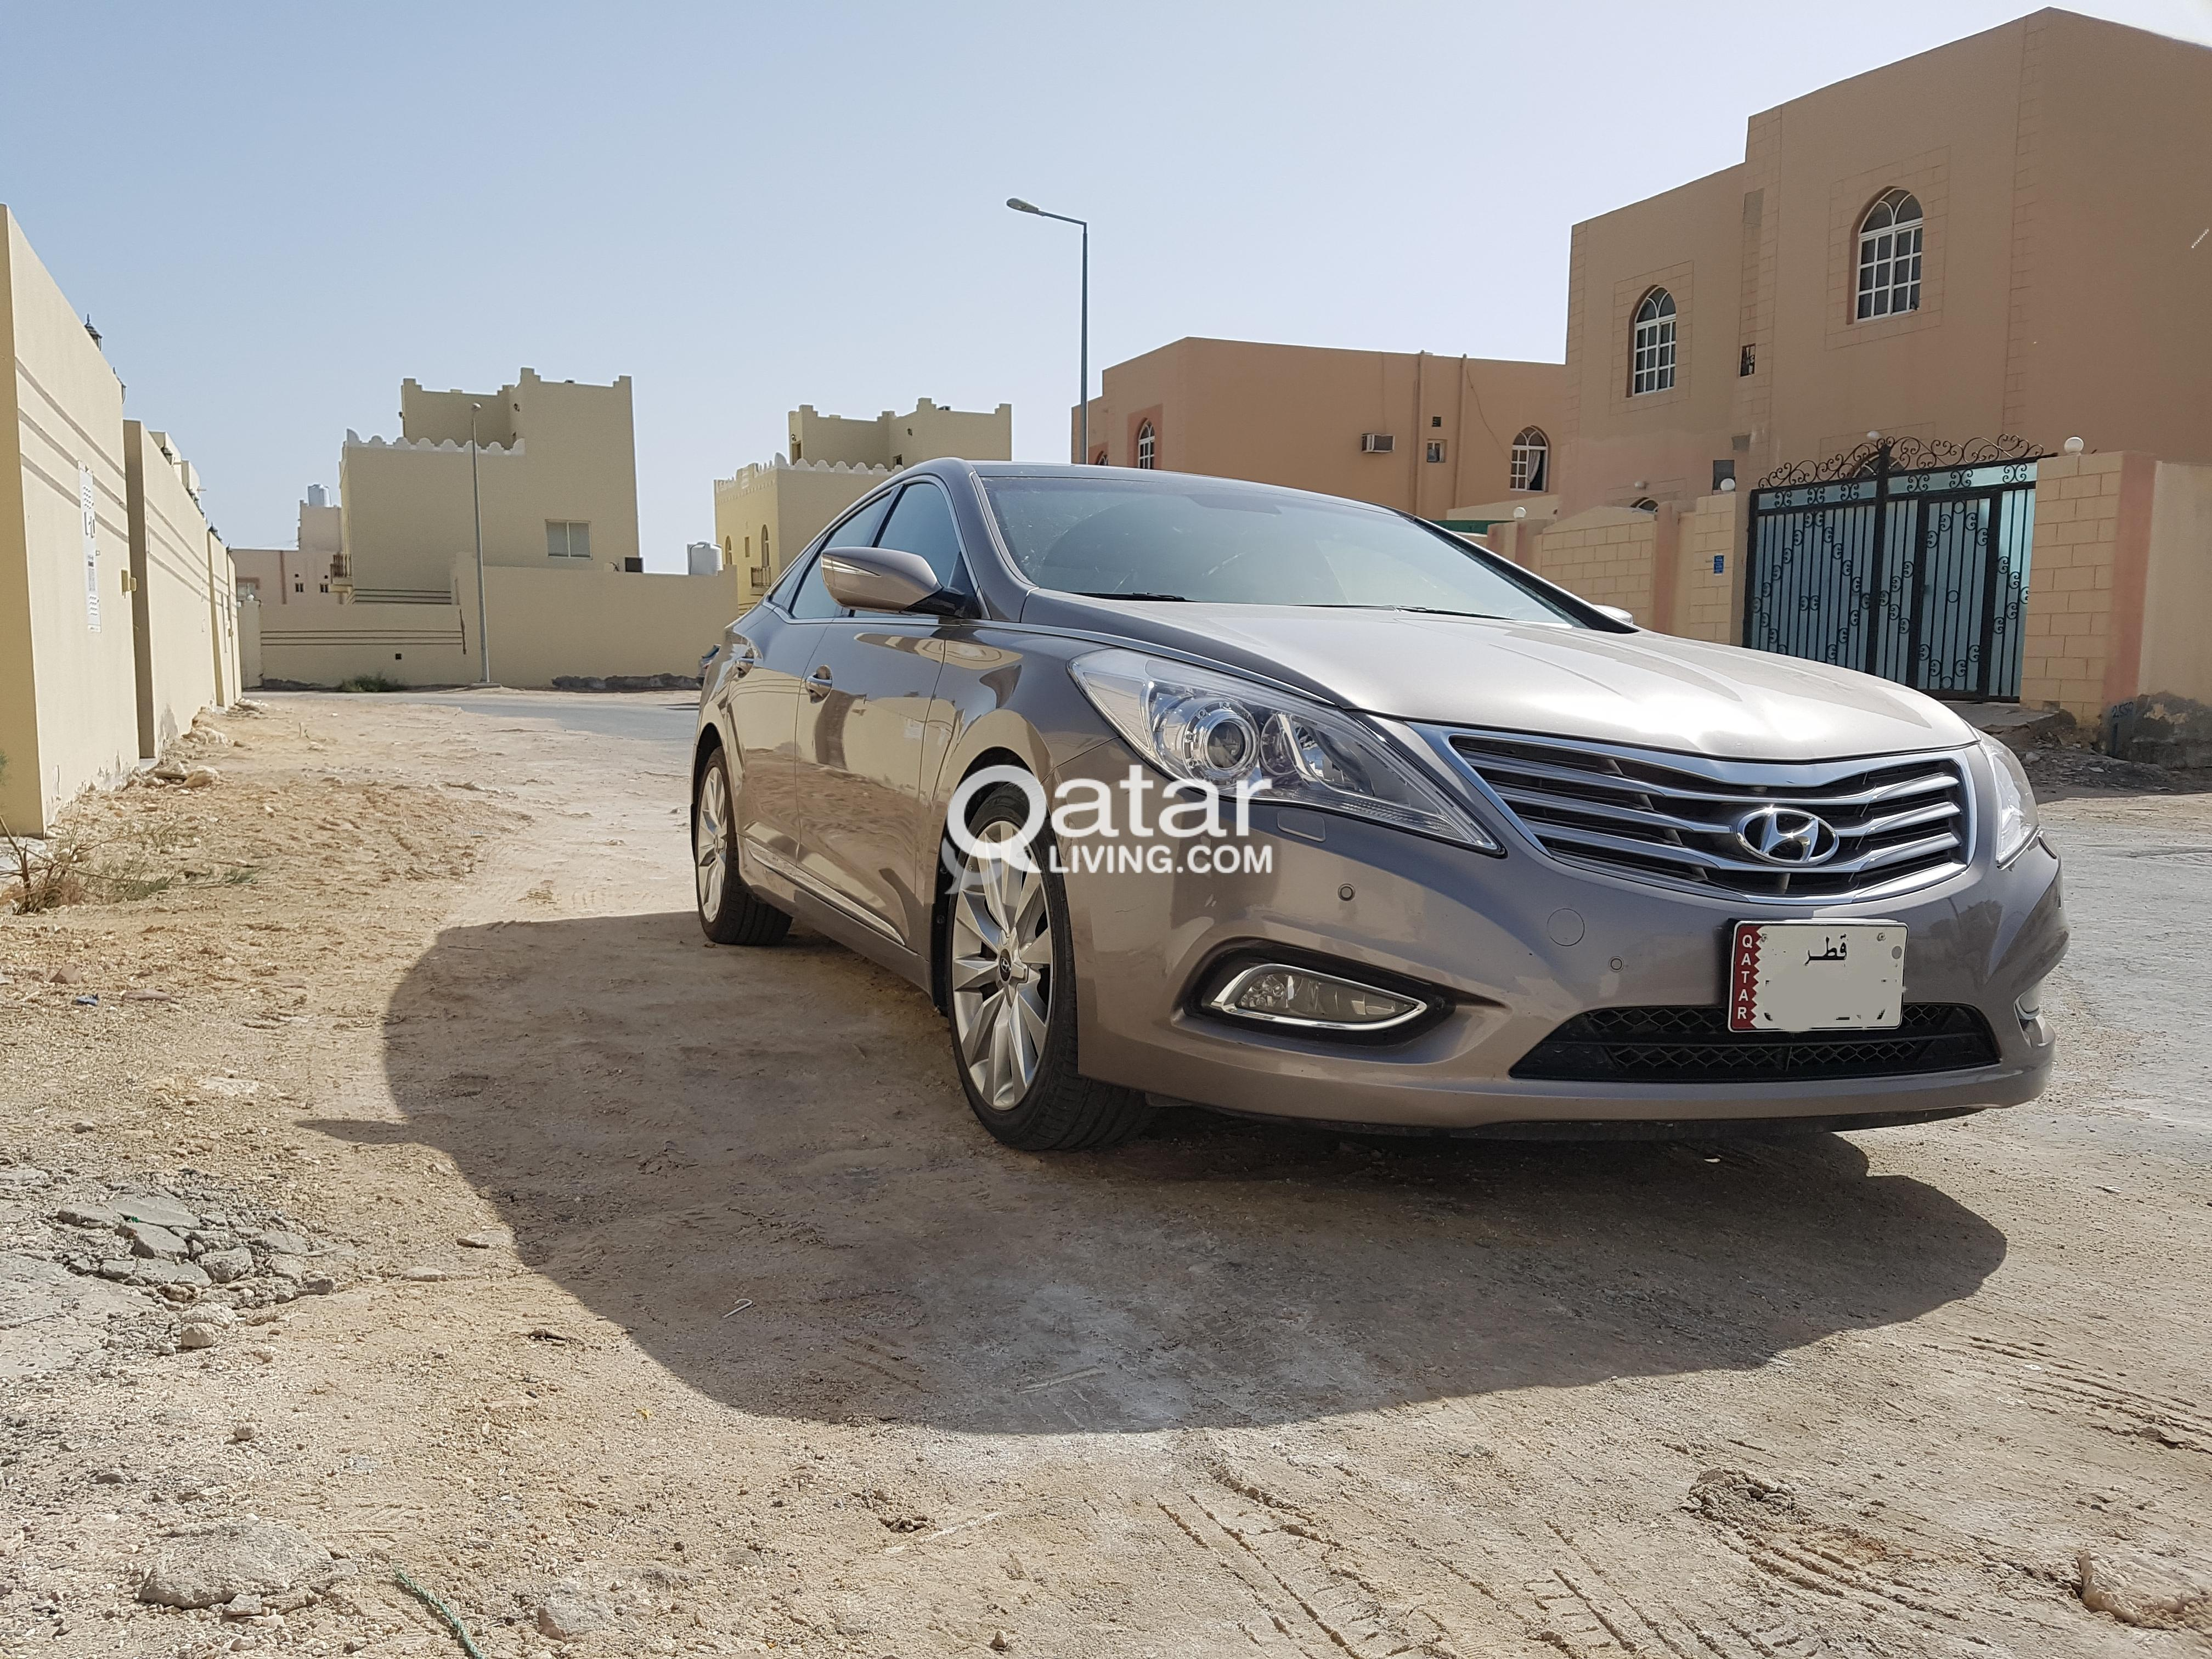 sale nviskaoa hyundai b babdab living for azera qatar vehicles